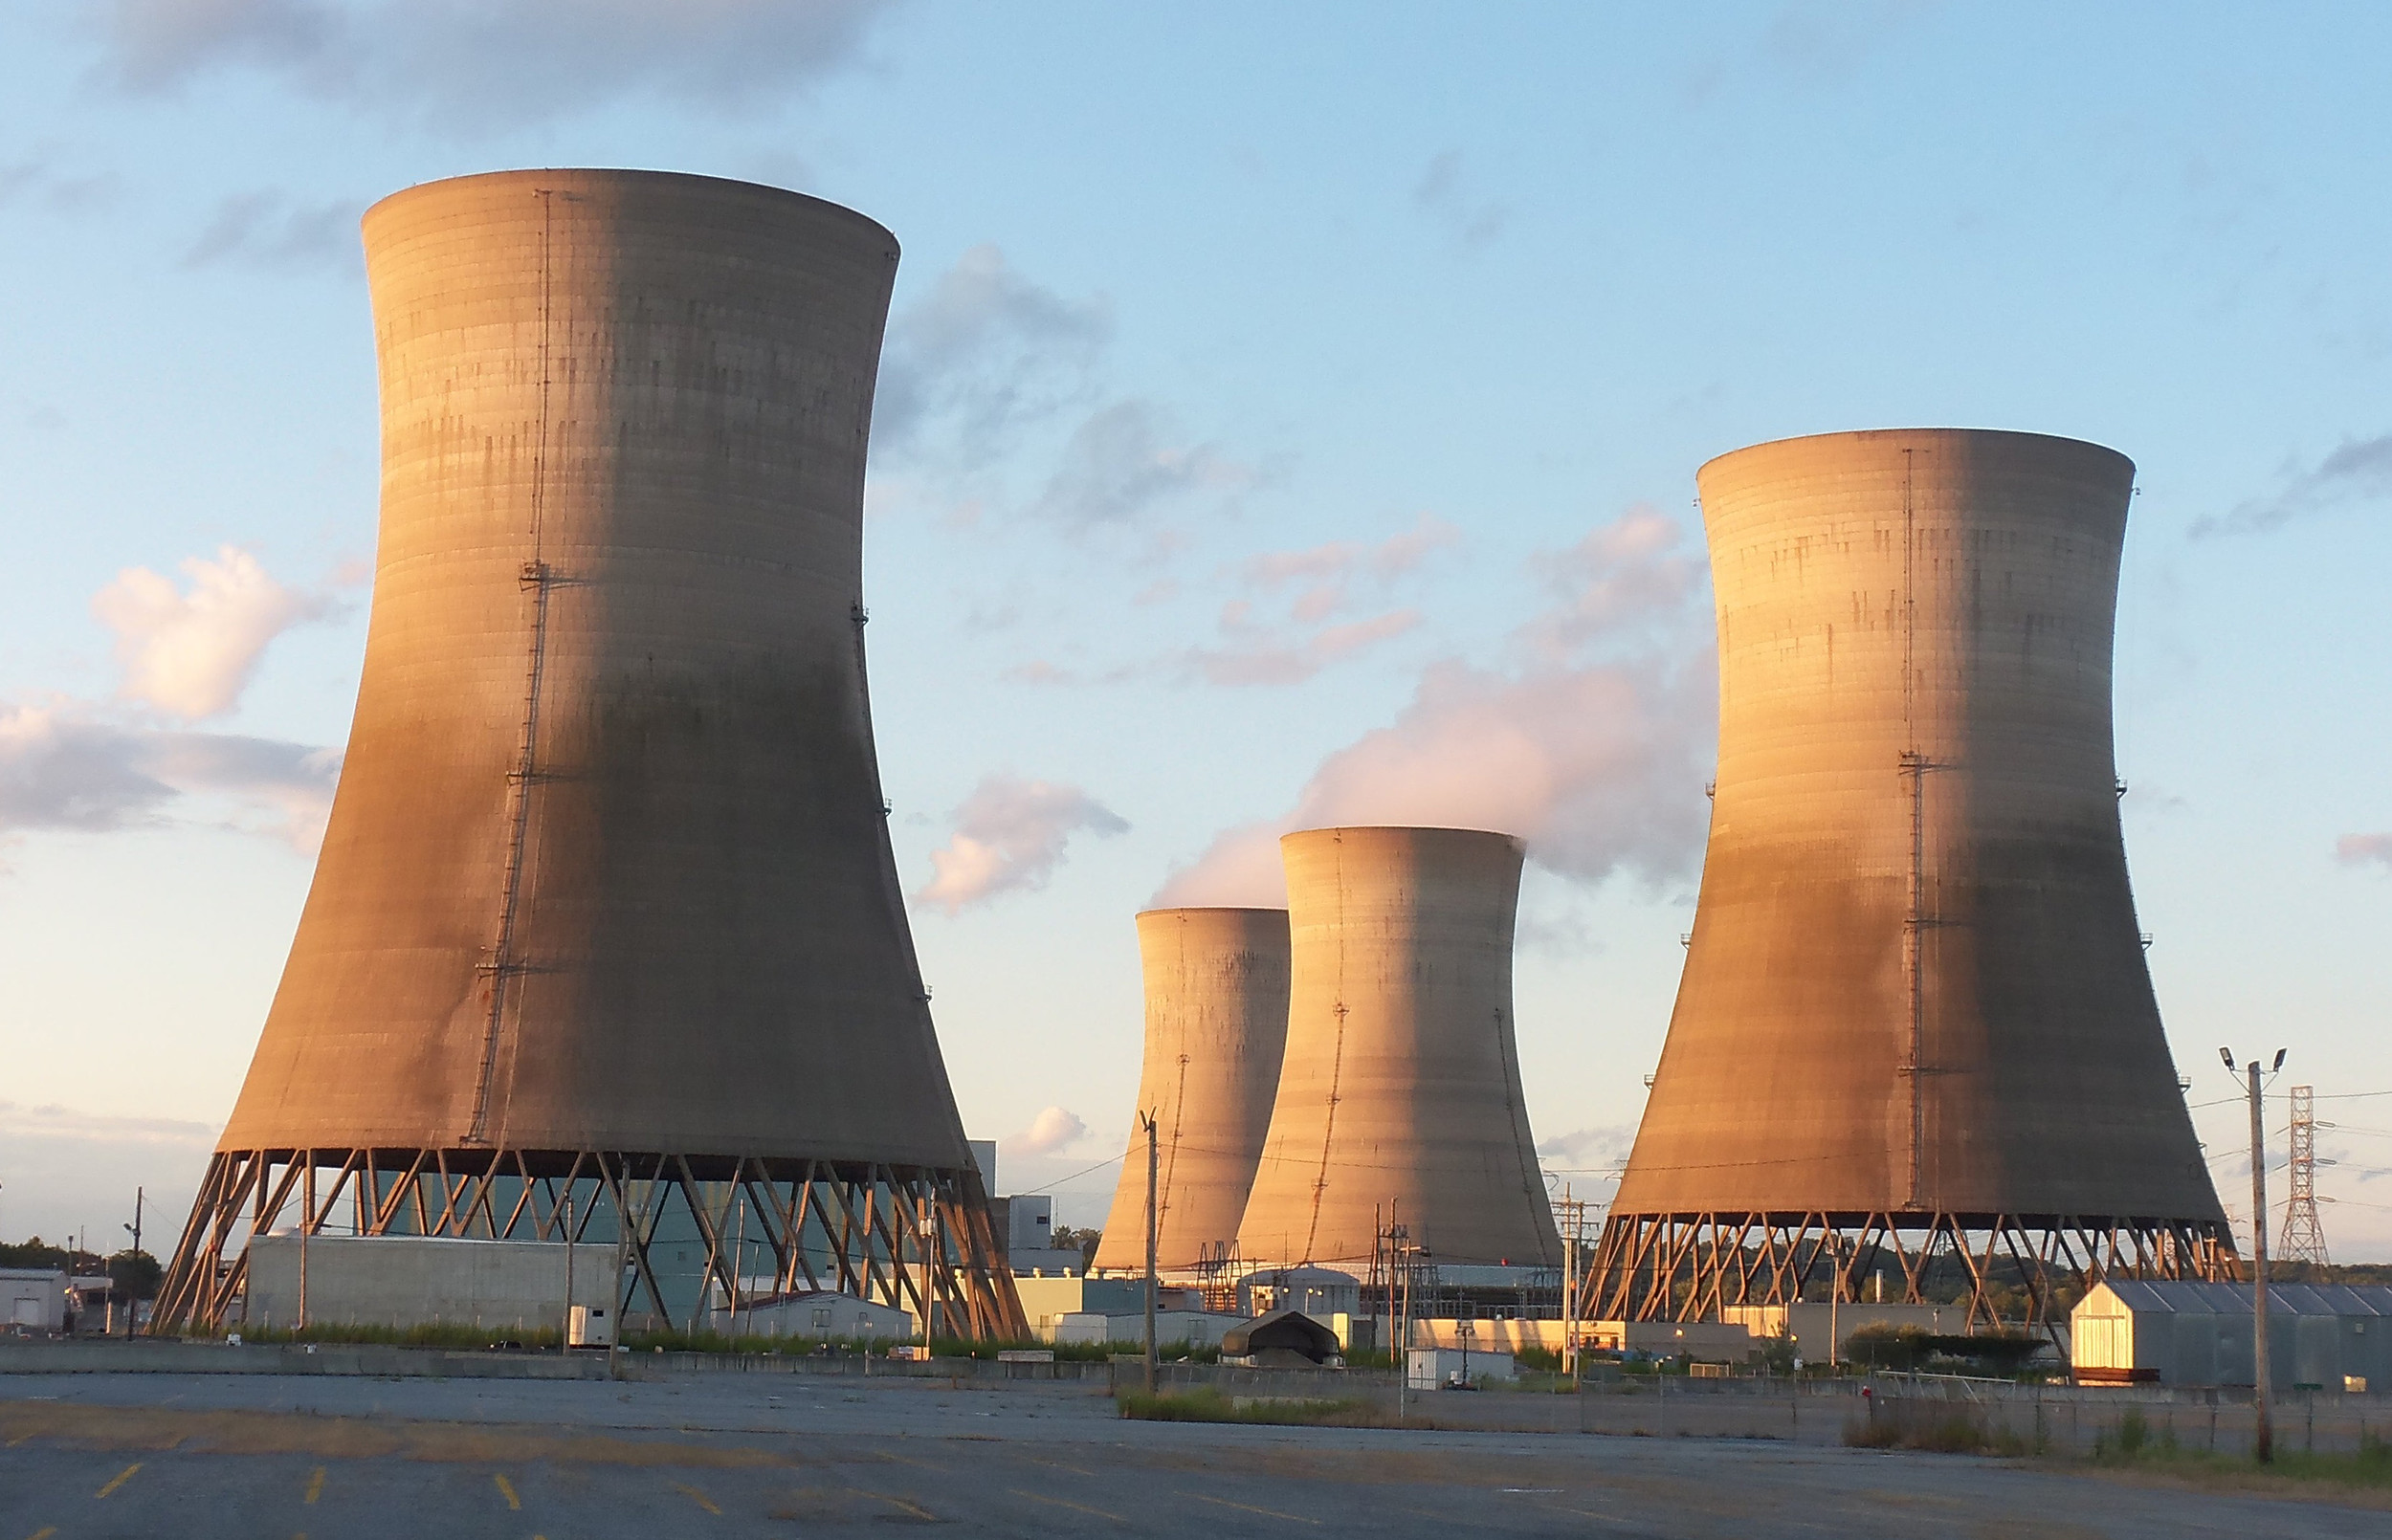 A view of Three Mile Island Generating Station's cooling towers from the island's south side. Bus tours of the island were conducted for the public during Three Mile Island Generating Station's Community Information Night on Sept. 7.